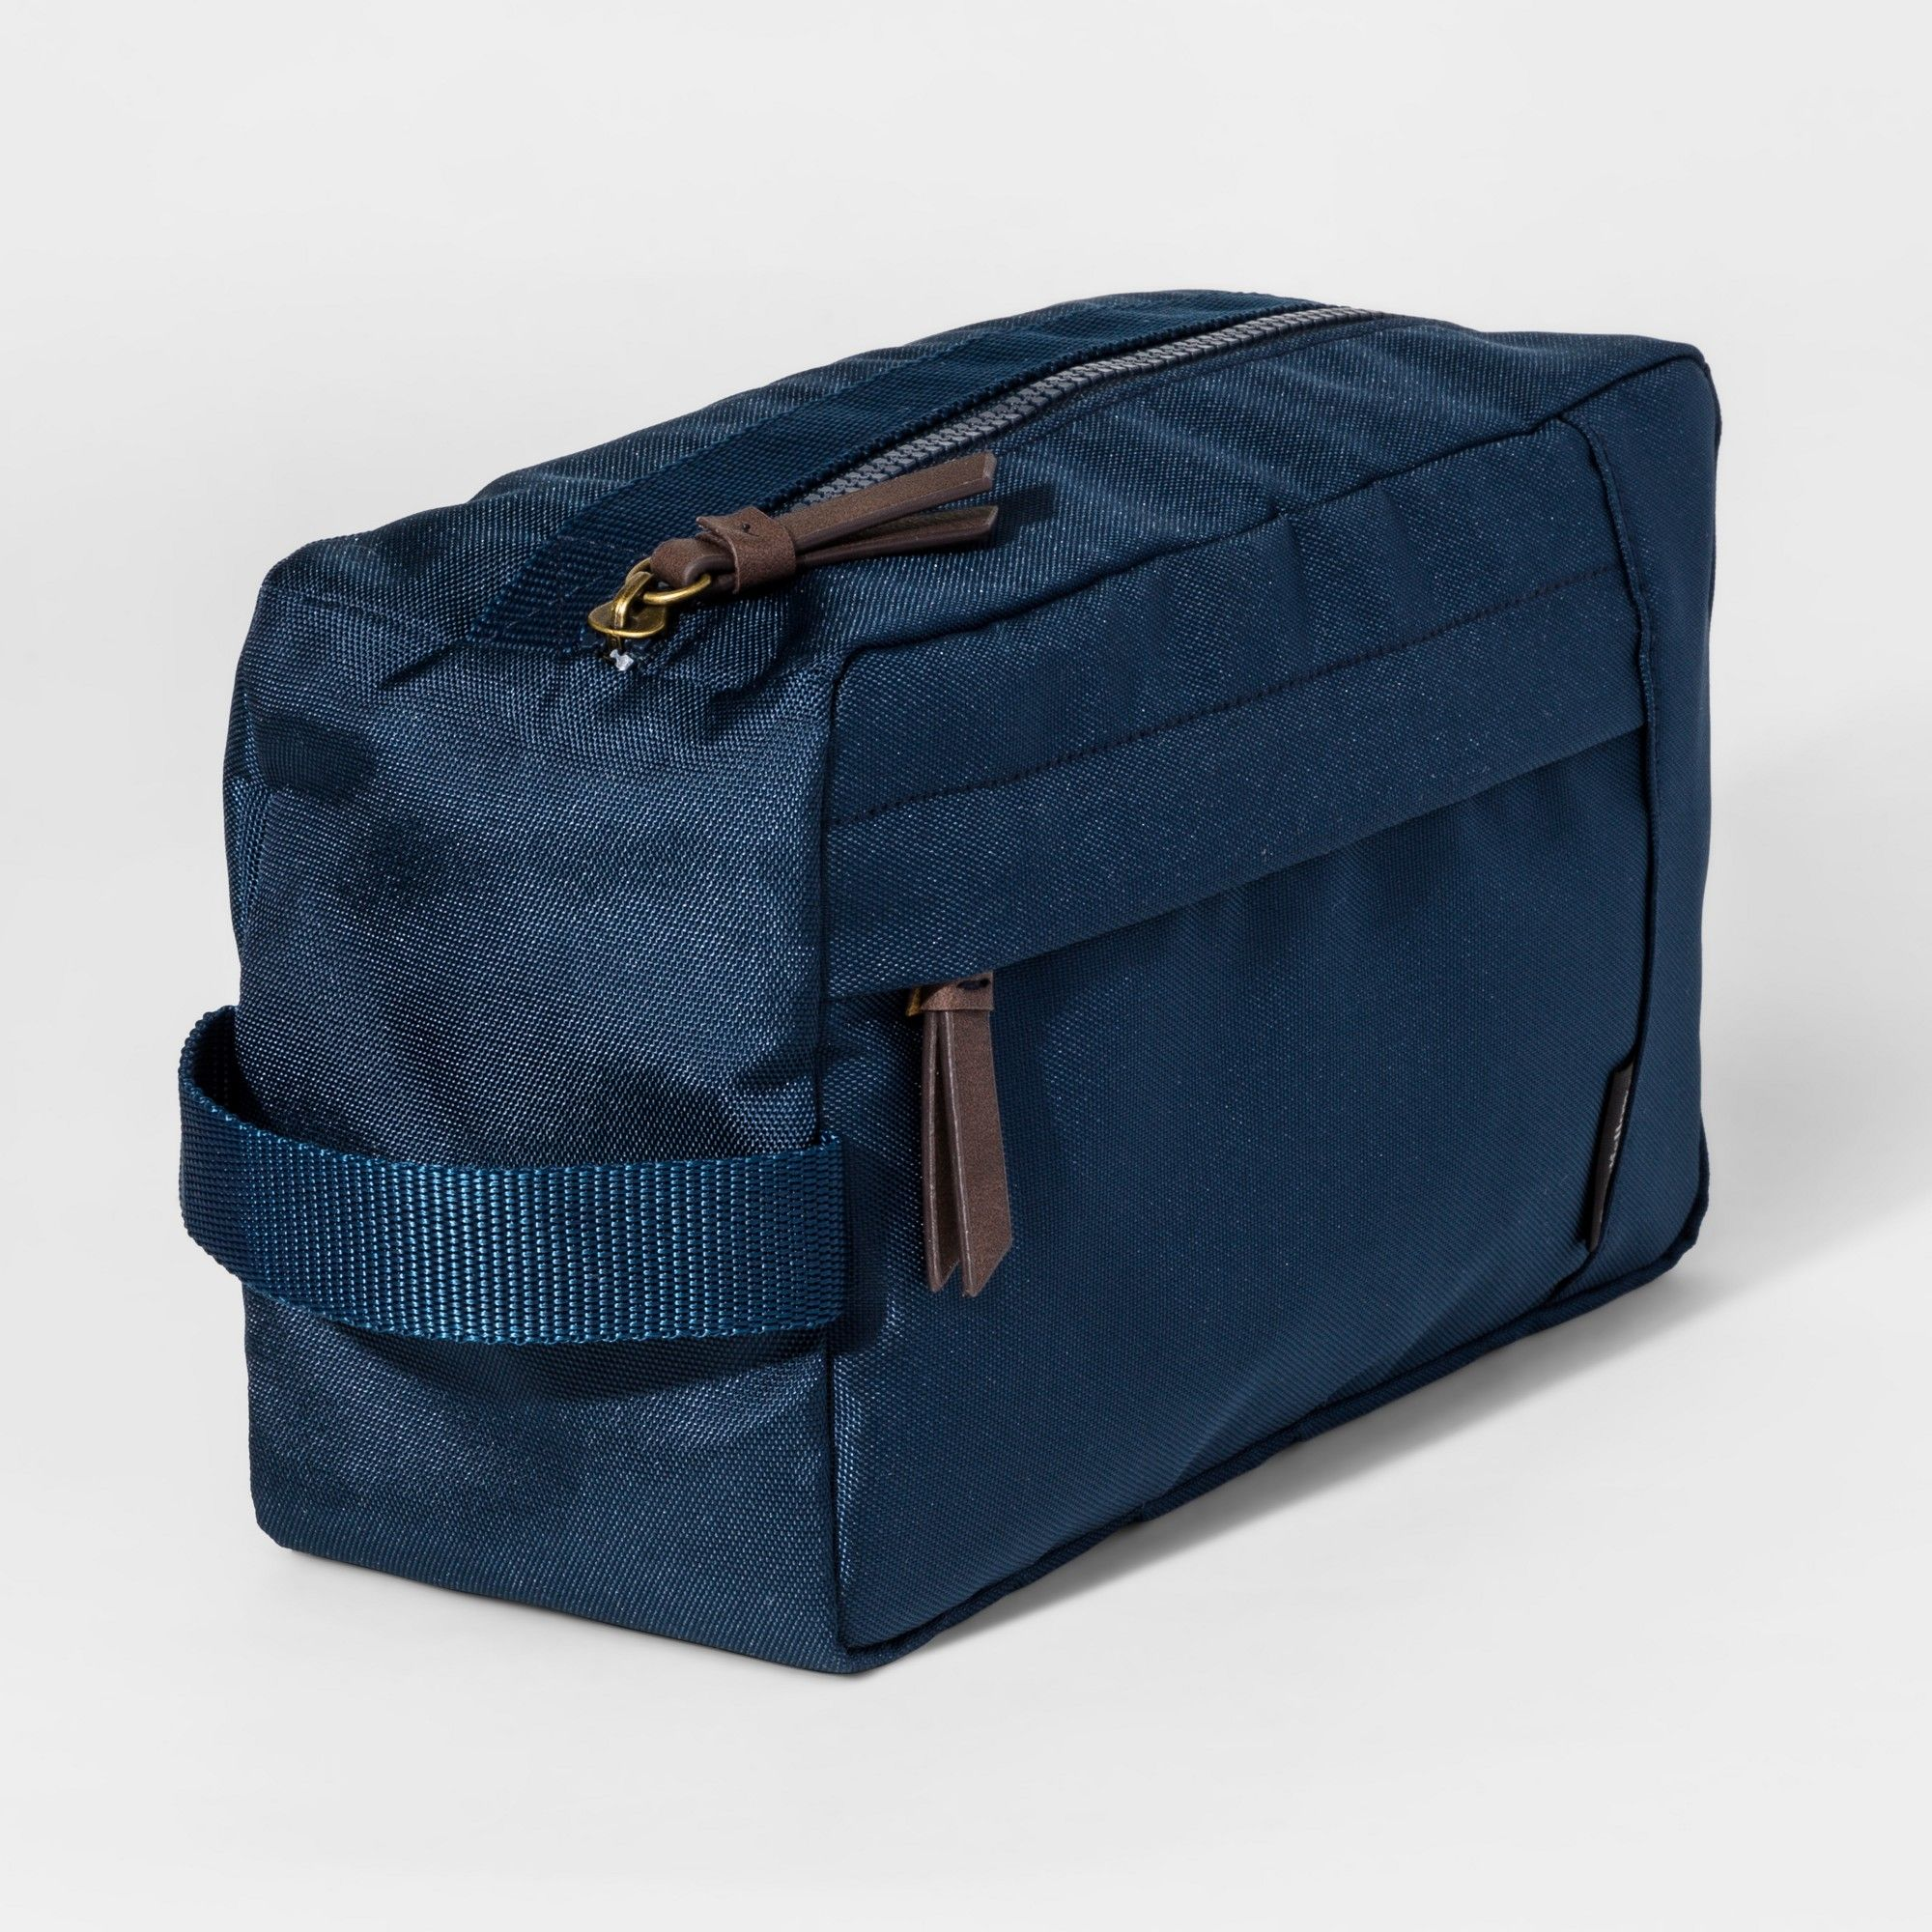 77590ee12f15 Toiletry Kit - Goodfellow   Co Navy (Blue)